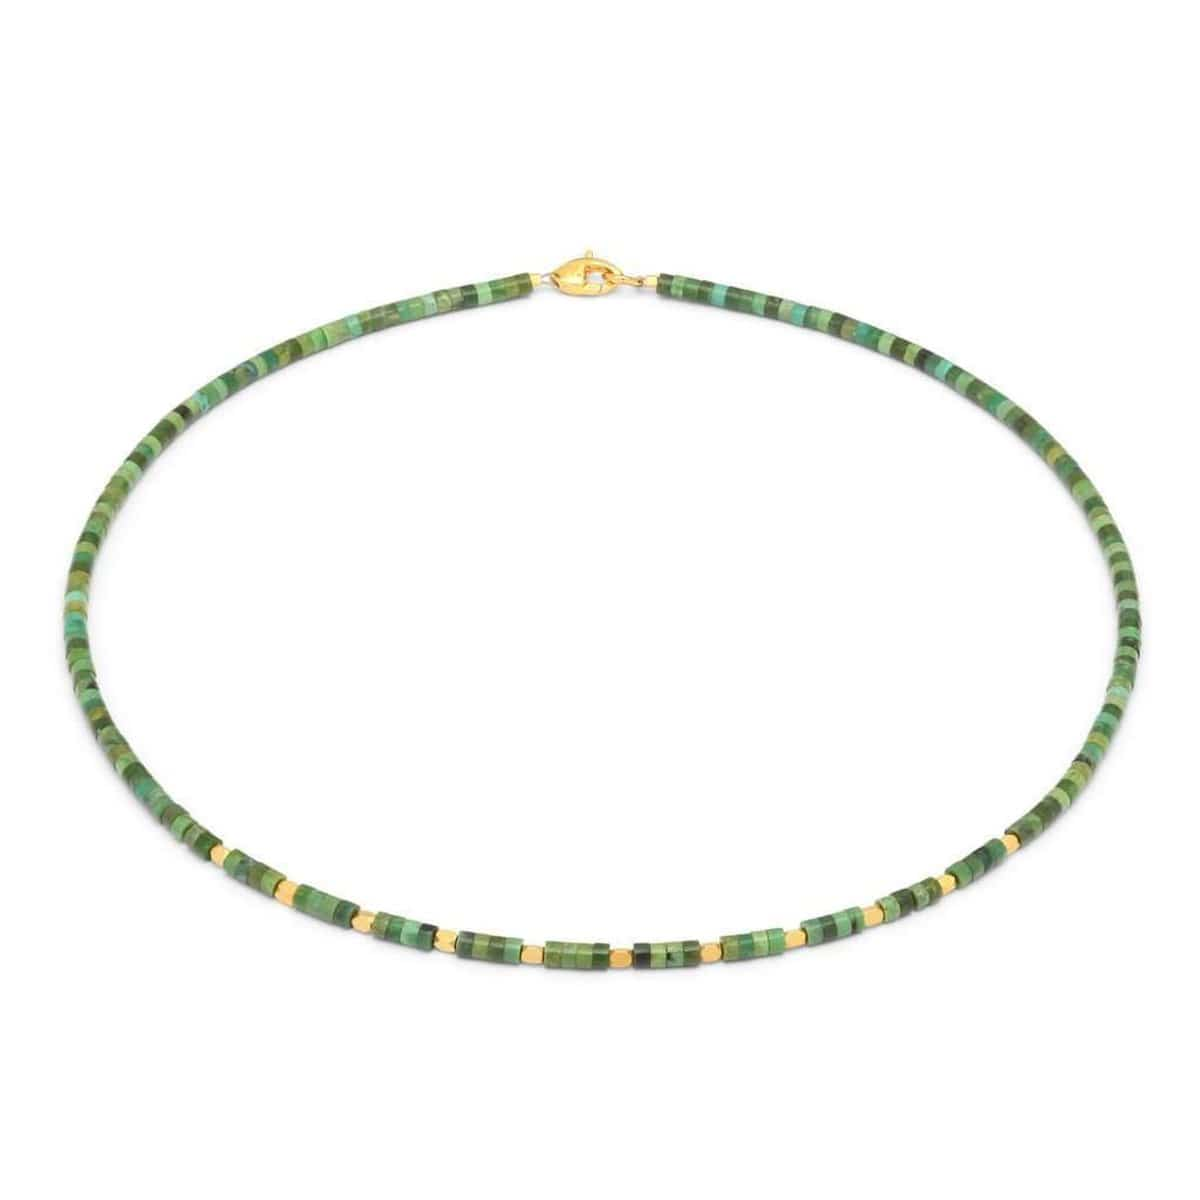 Feshi Green Turquoise Necklace - 85326356-Bernd Wolf-Renee Taylor Gallery